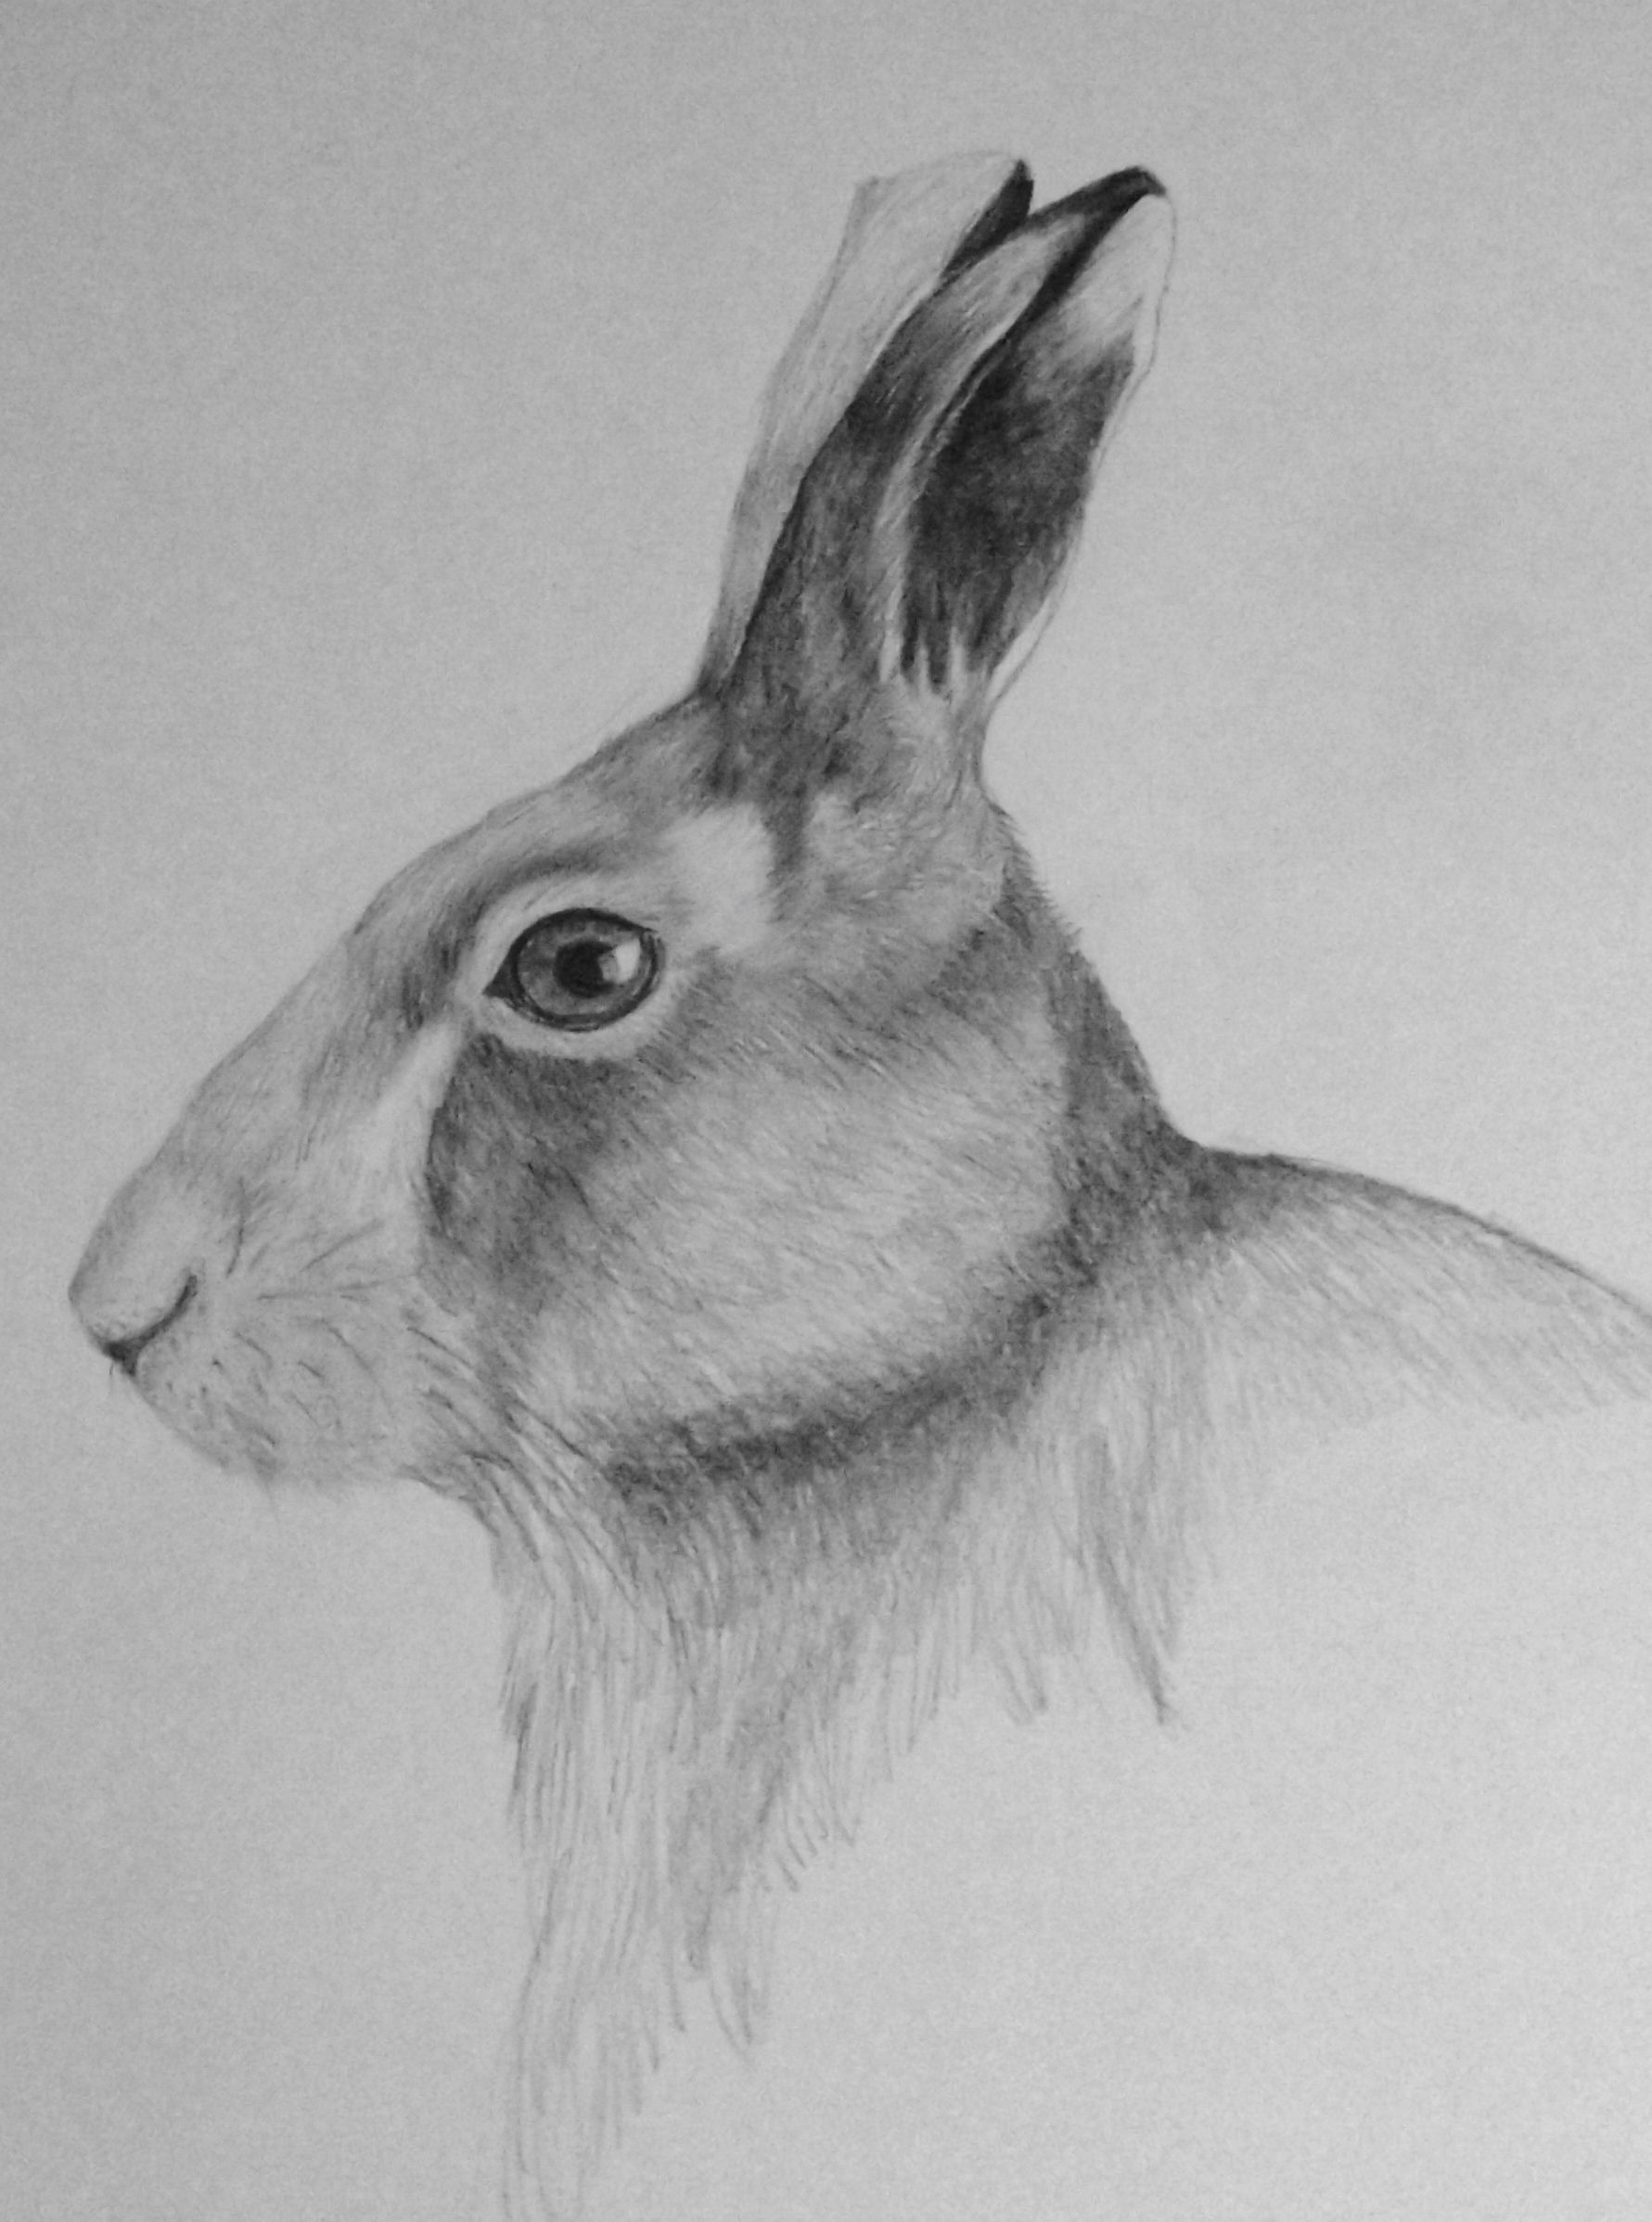 Hare in Pencil by Audrey Haney